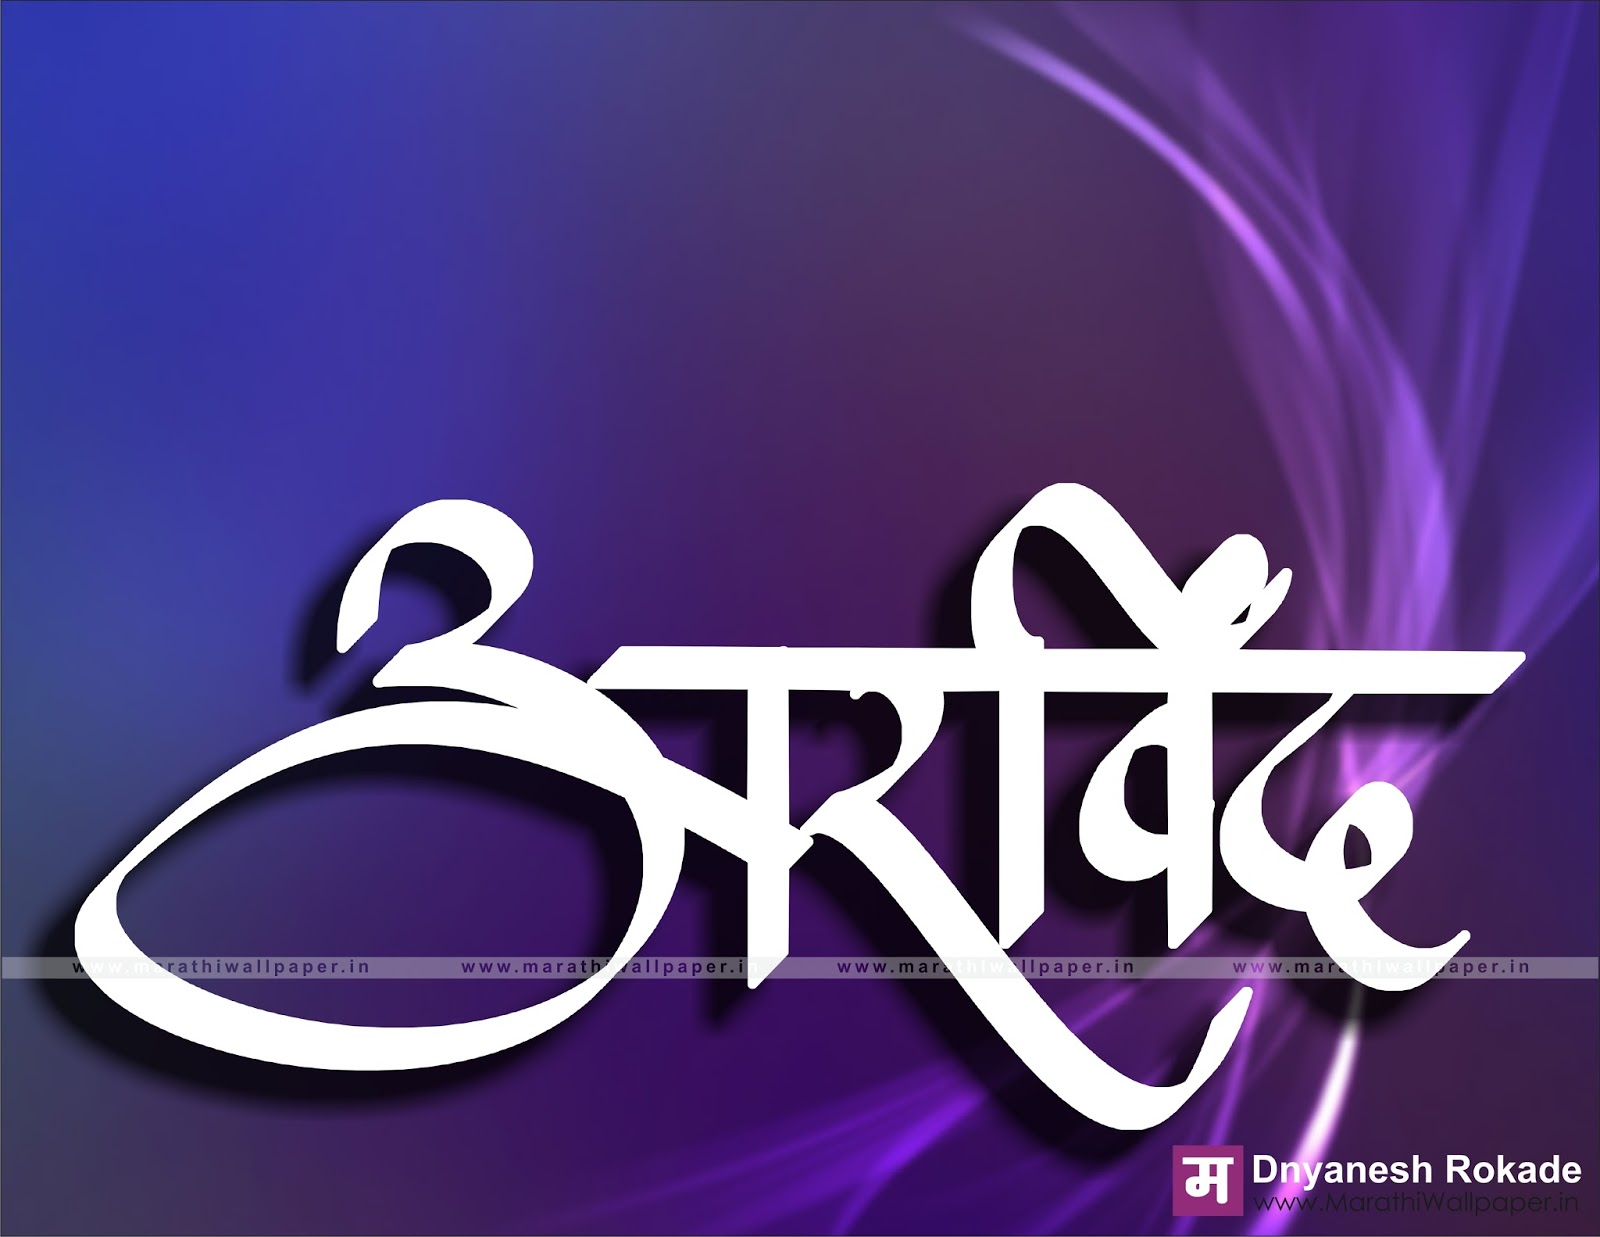 Arvind name wallpaper marathi calligraphy dnyanesh